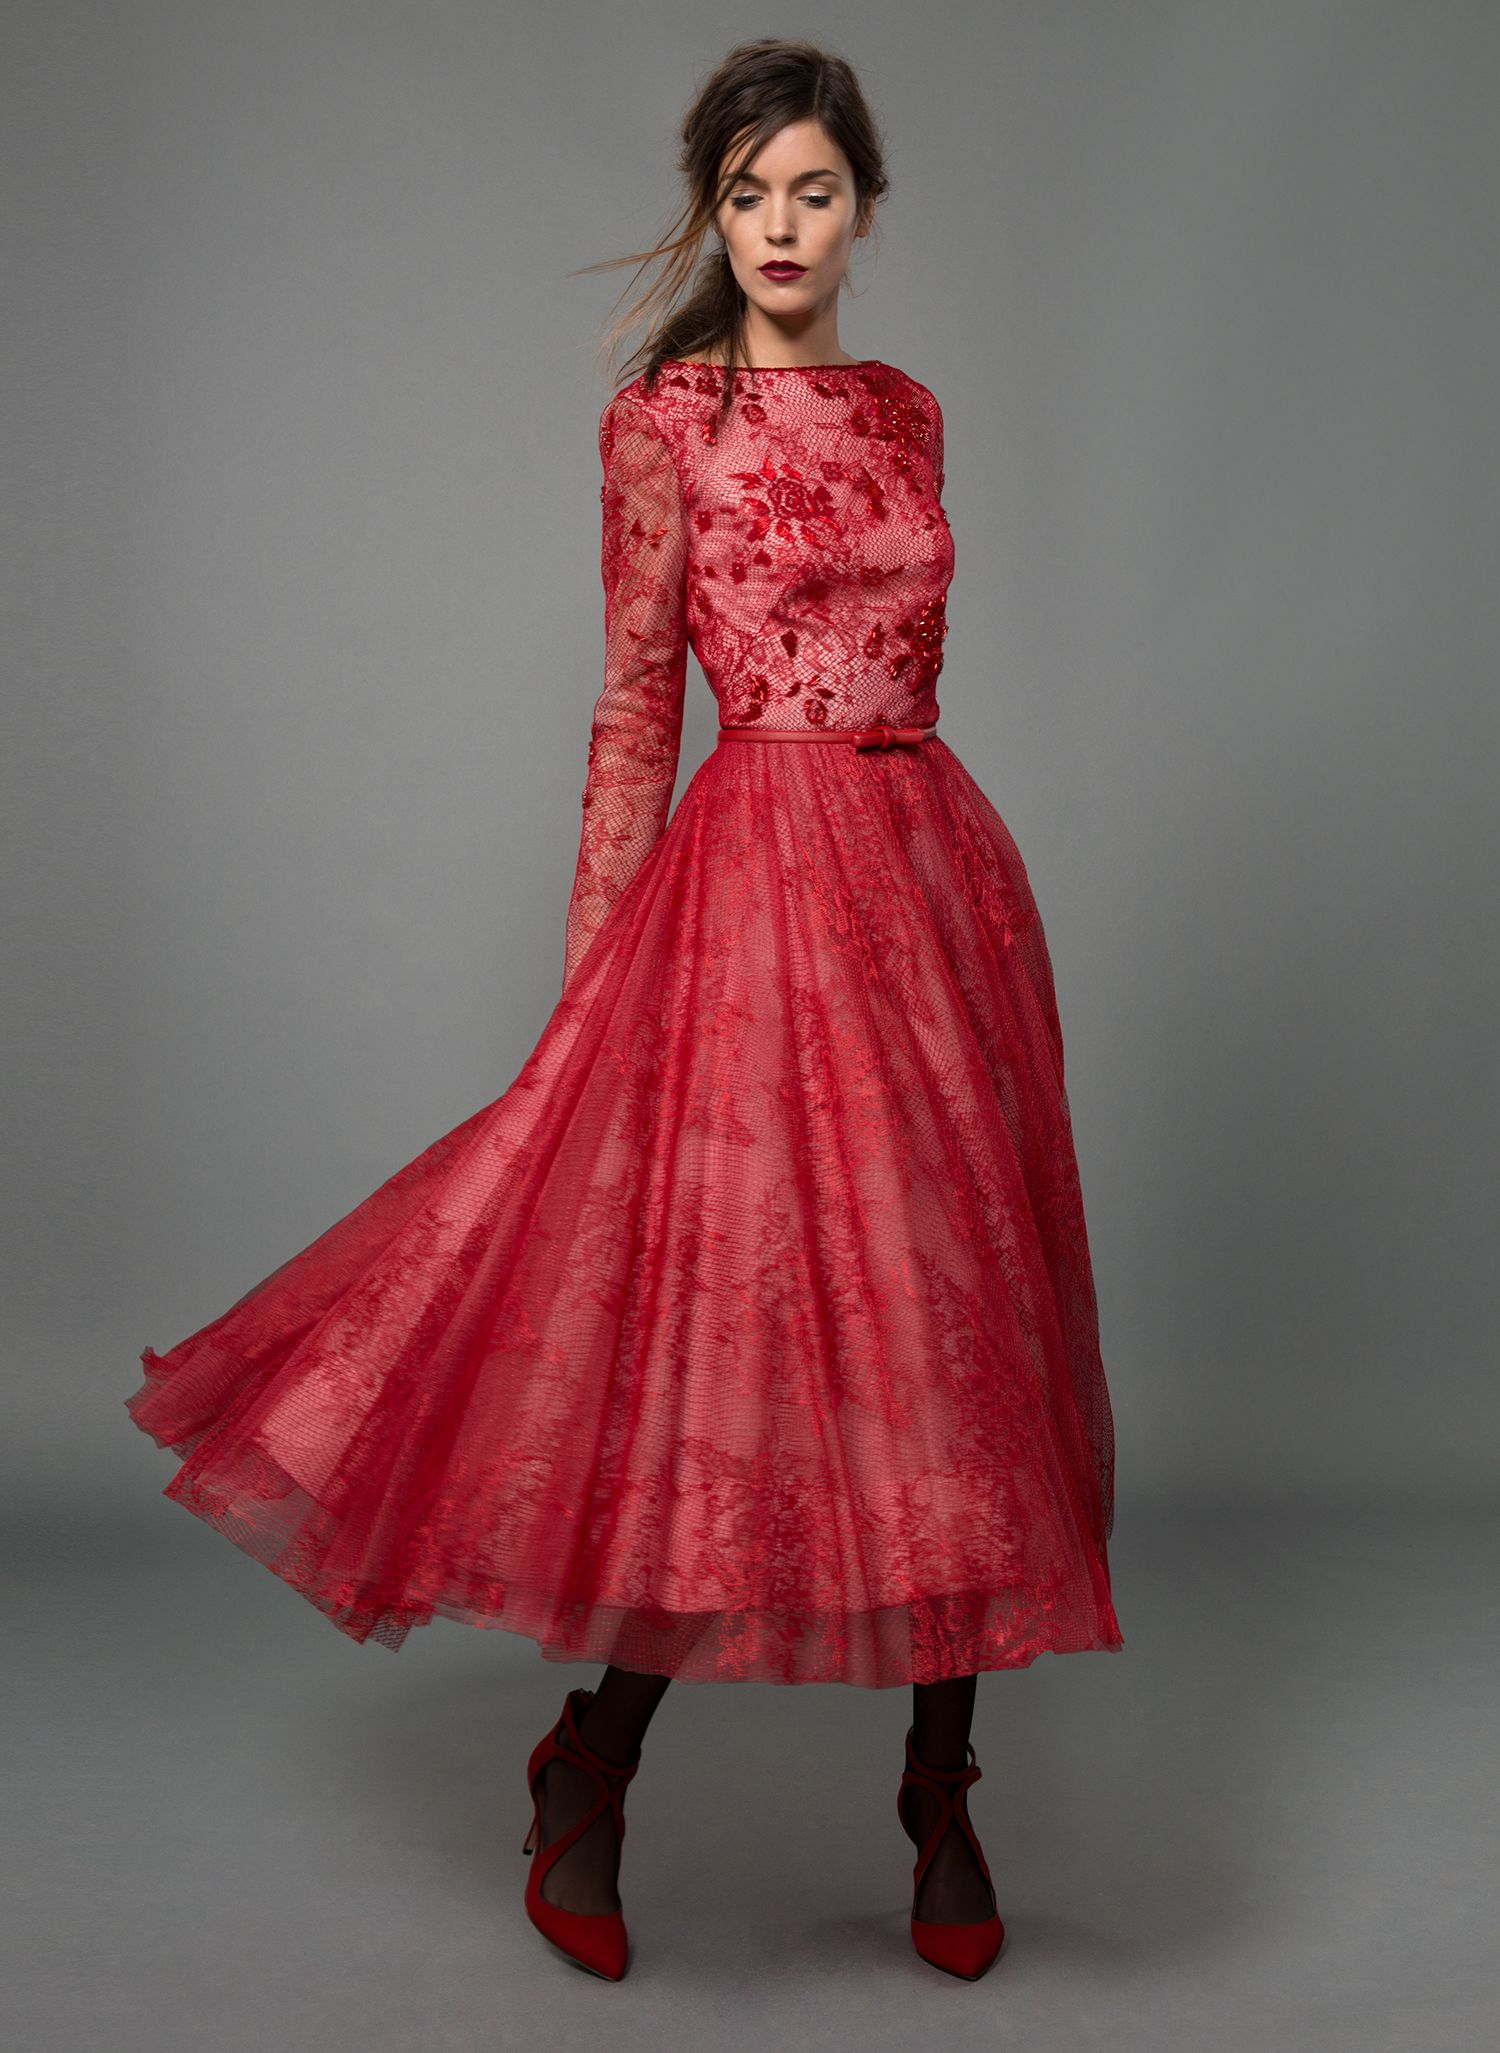 Beaded lace and tulle long sleeve circle skirt dress and grosgrain